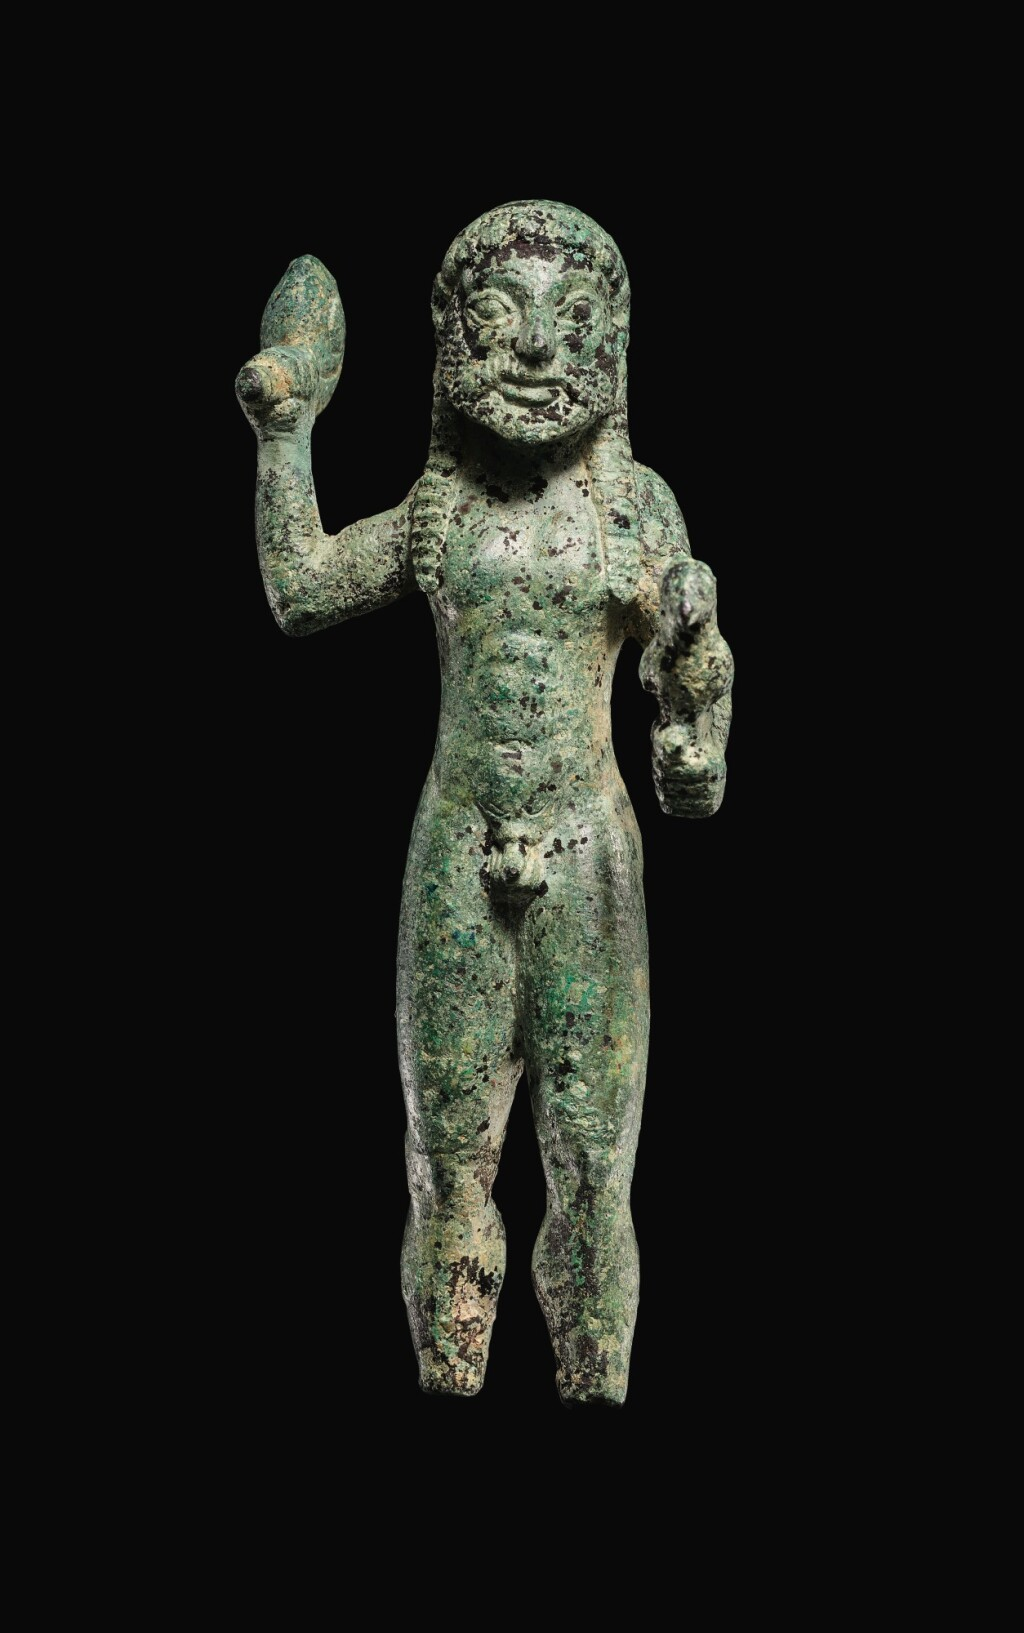 A GREEK BRONZE FIGURE OF ZEUS, 6TH CENTURY B.C.